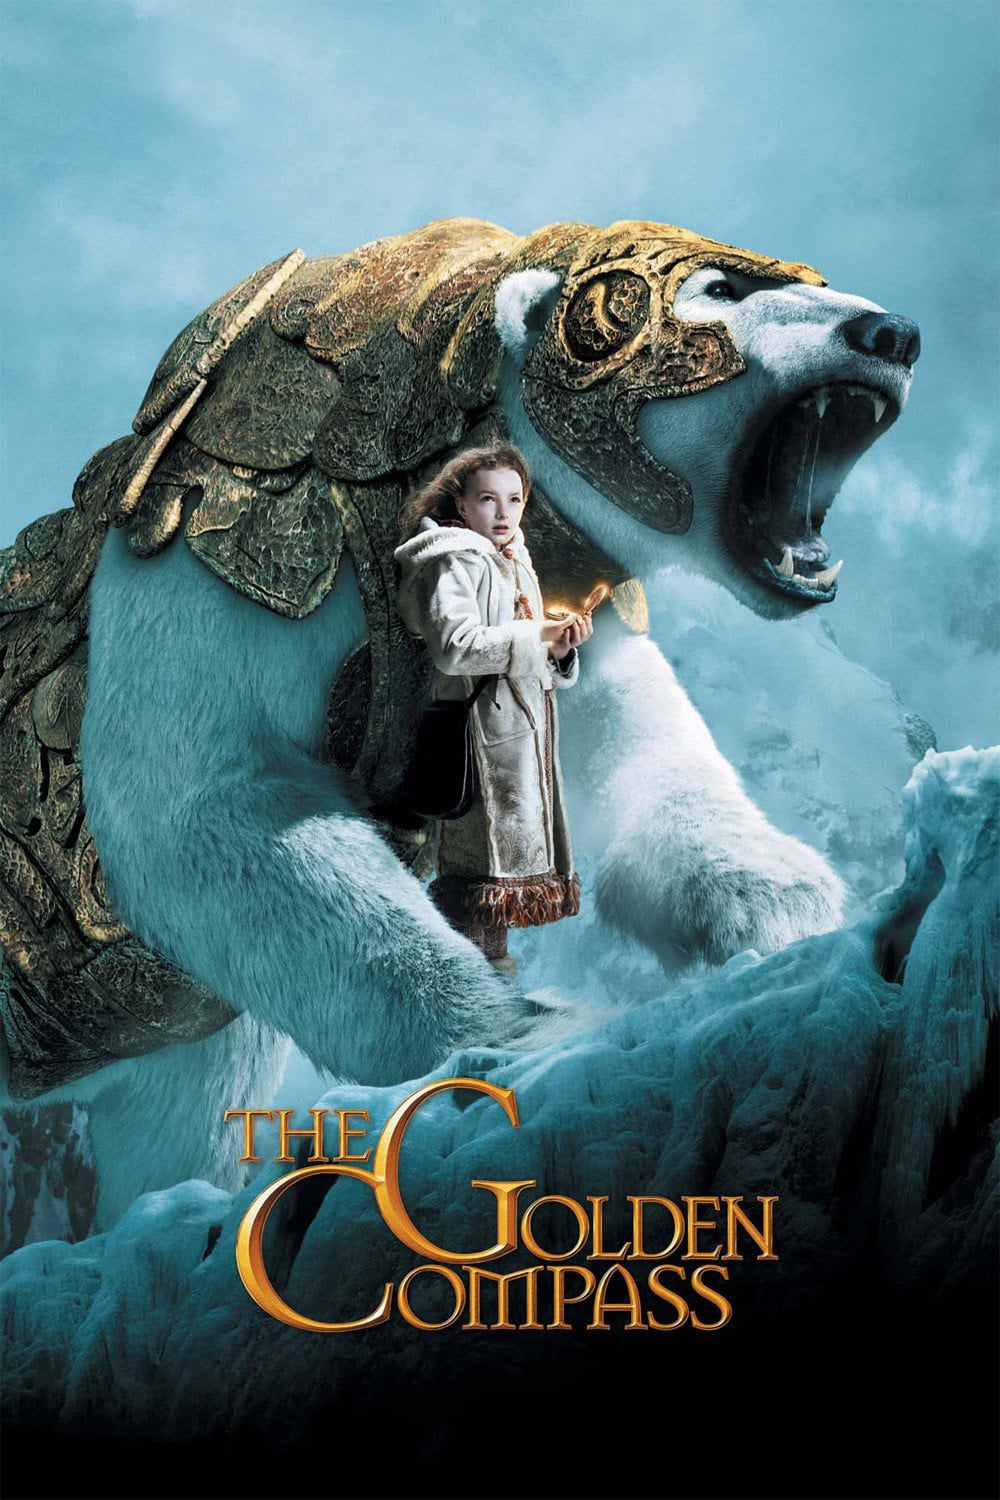 THE GOLDEN COMPASS (2017) TAMIL DUBBED HD